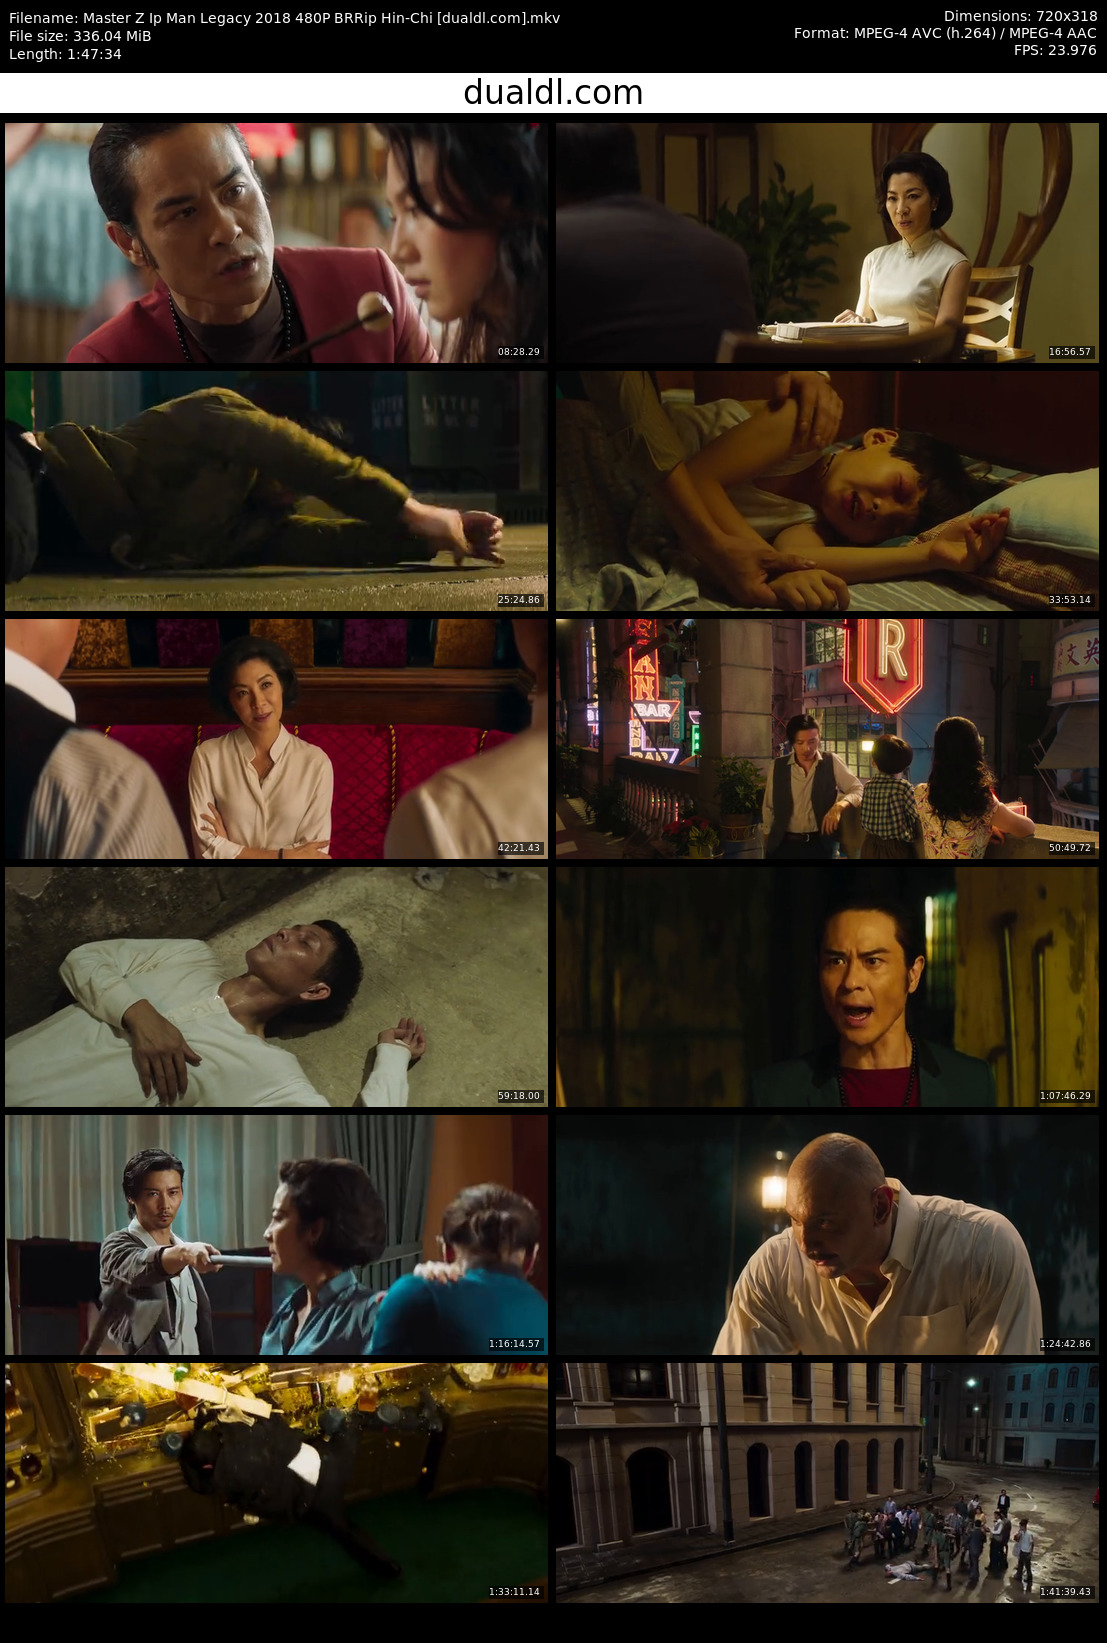 Master Z Ip Man Legacy 2018 480P BRRip Hin-Chi Download